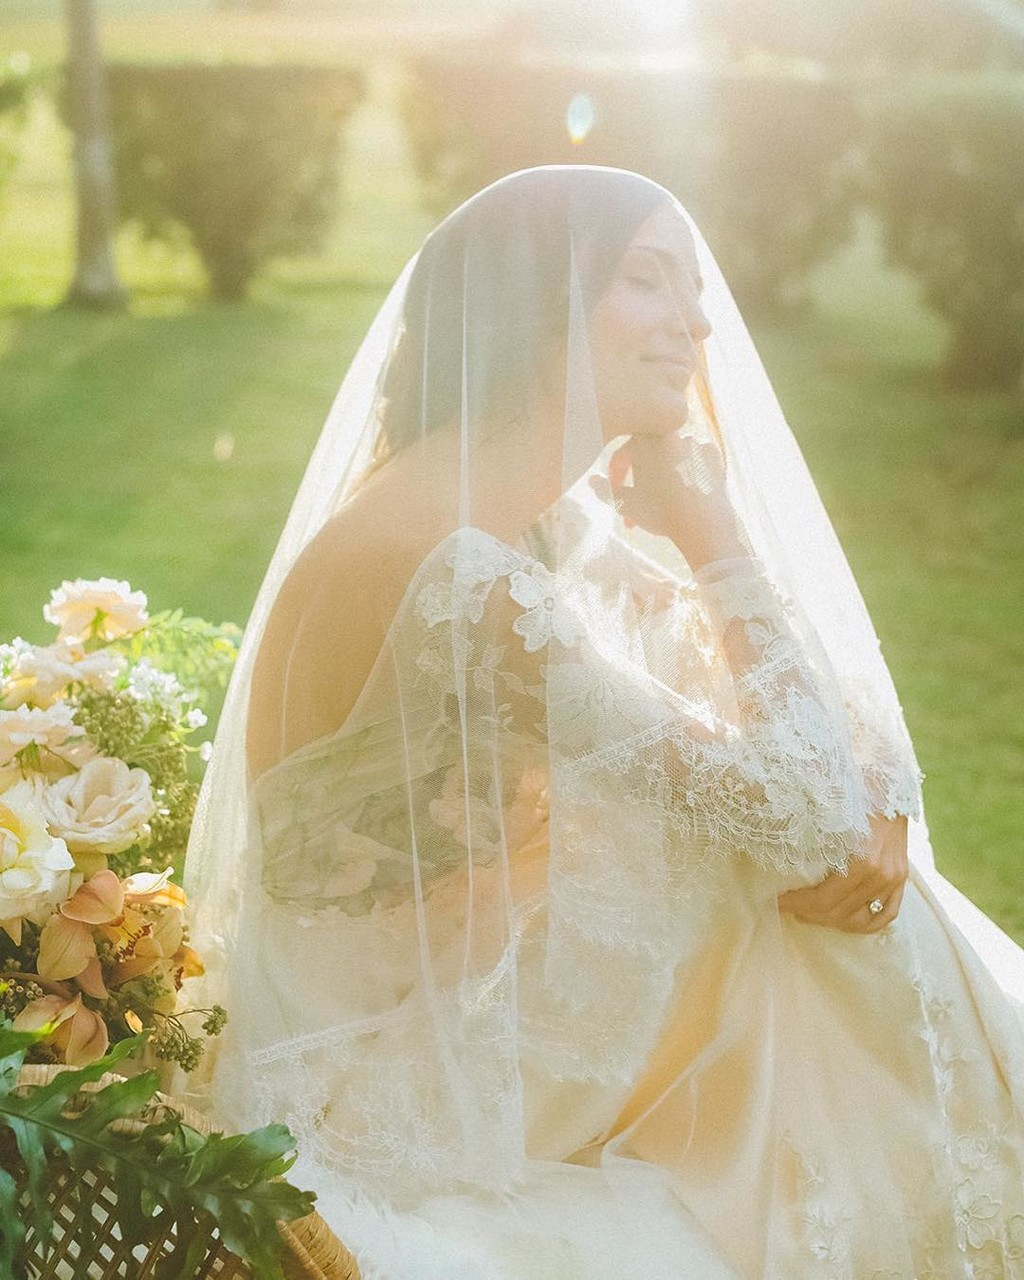 When they ask me about the romantics of #bridalveils